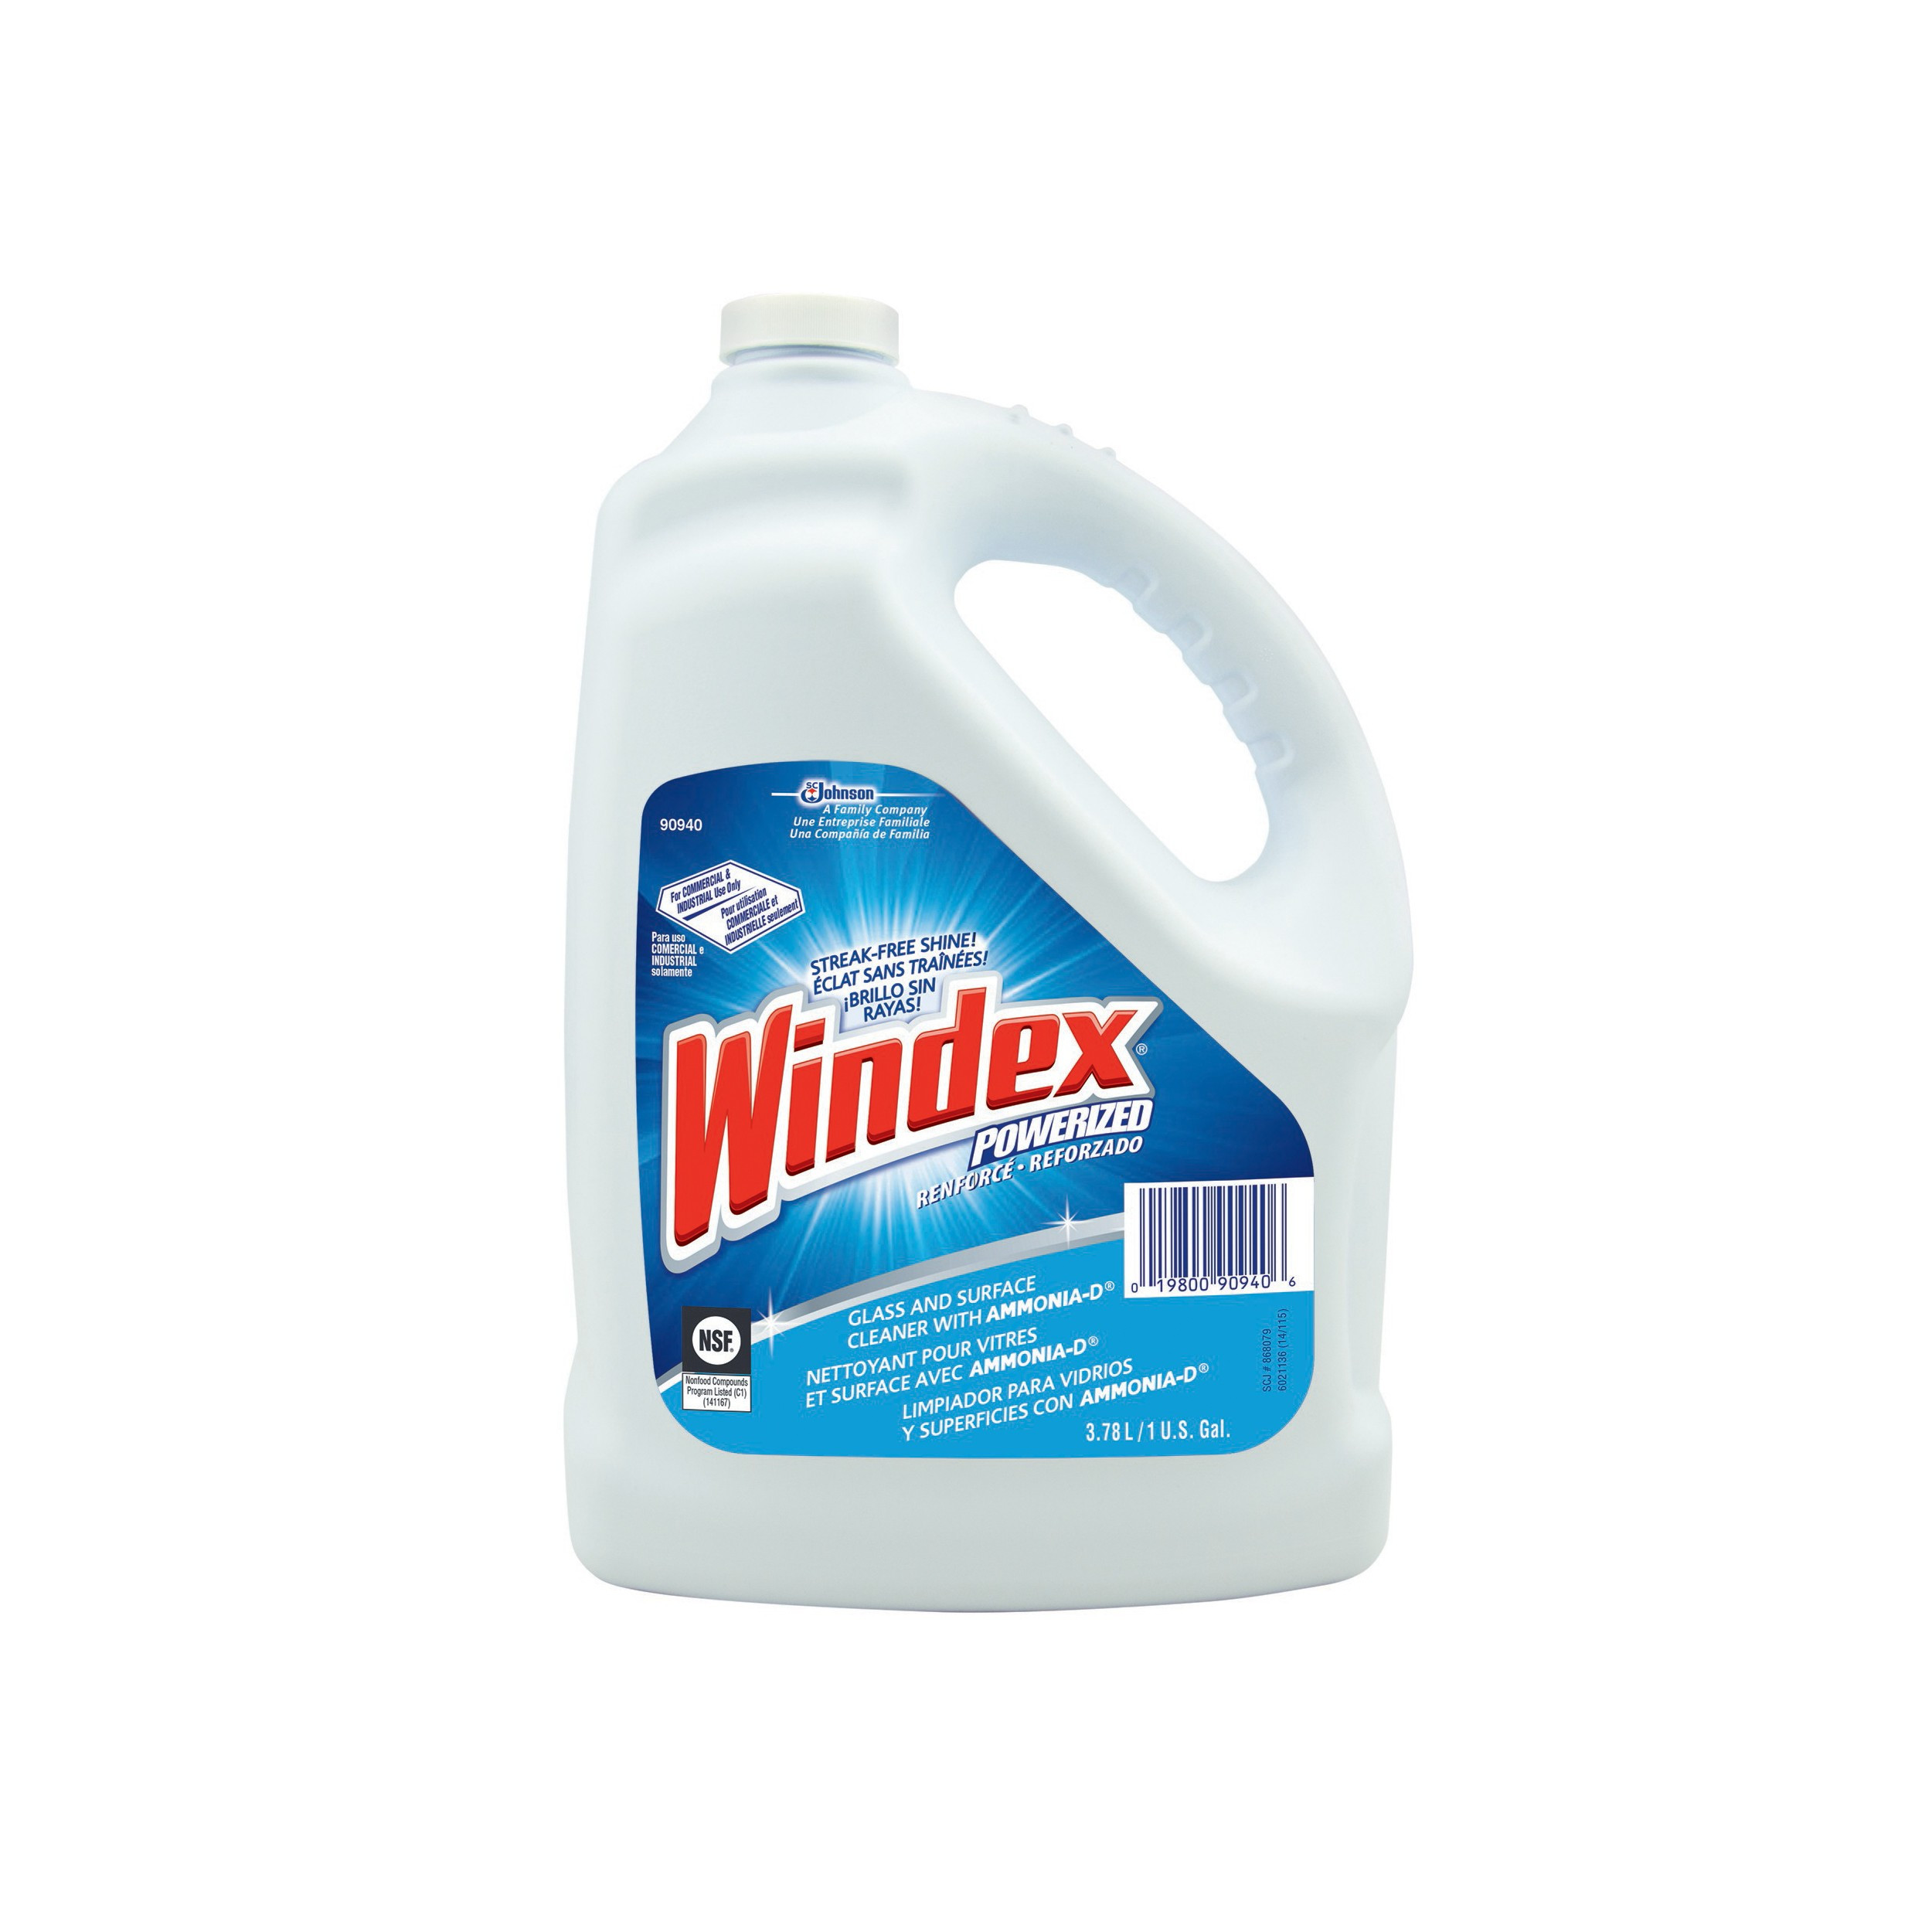 Windex By Sealed Air 90940 Powerized Rtu Glass Cleaner With Ammonia